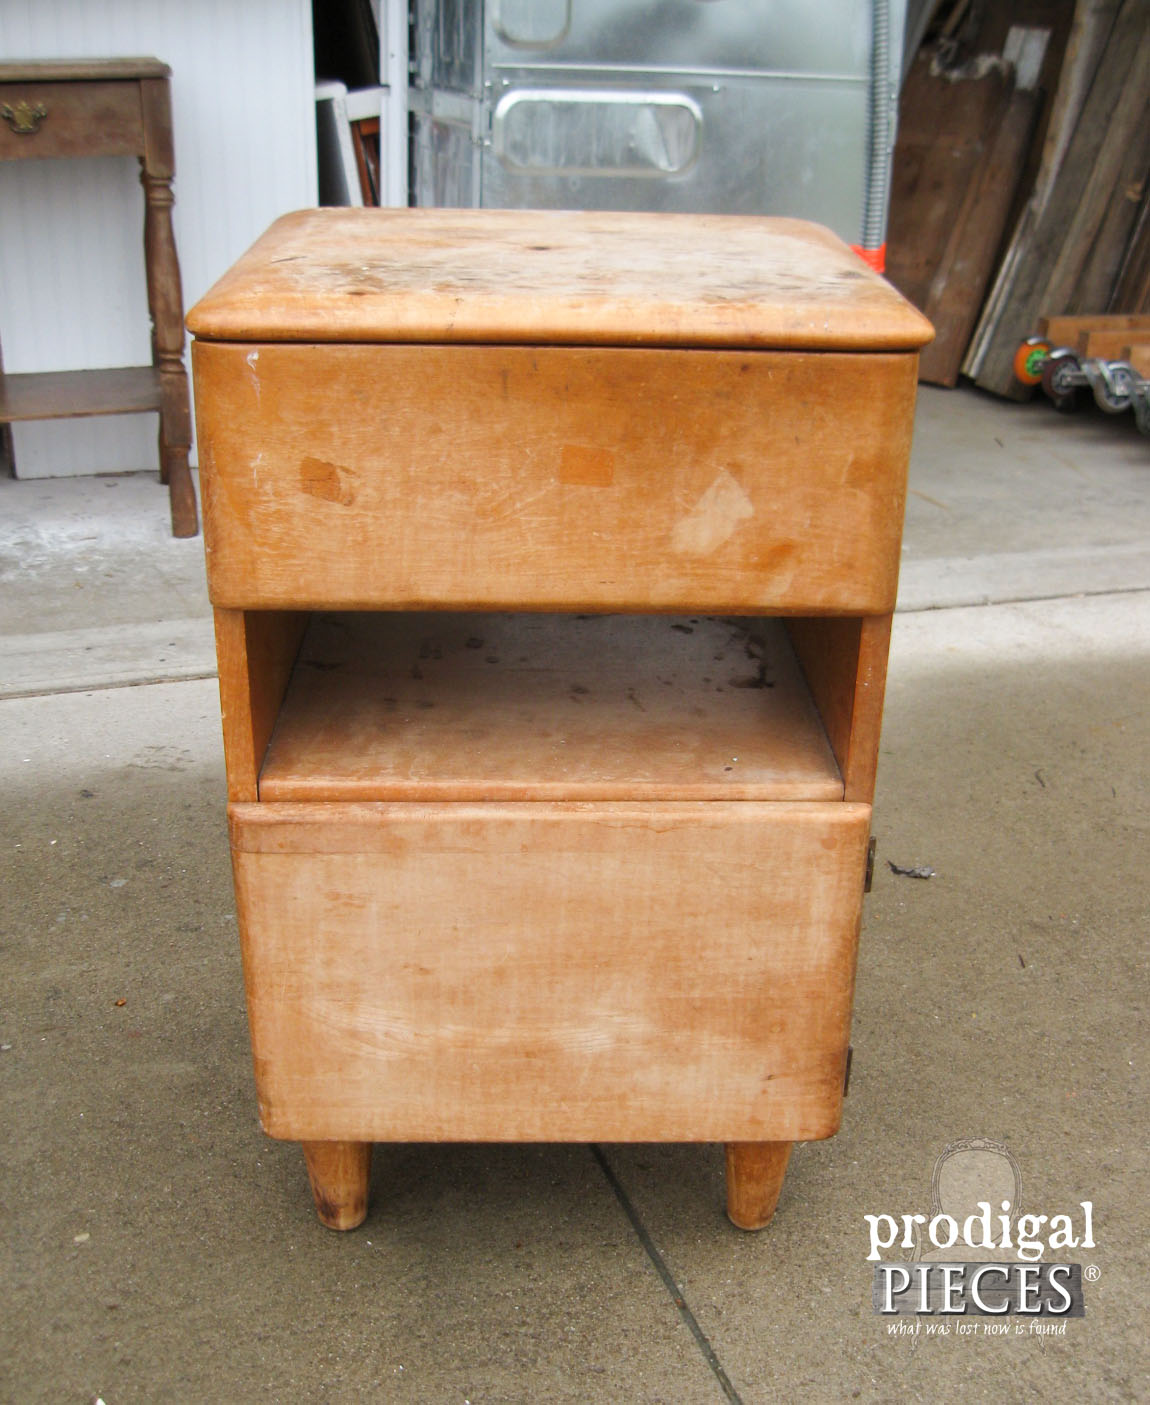 Art Deco Nightstand Before Modern Chic Makeover | Prodigal Pieces | www.prodigalpieces.com